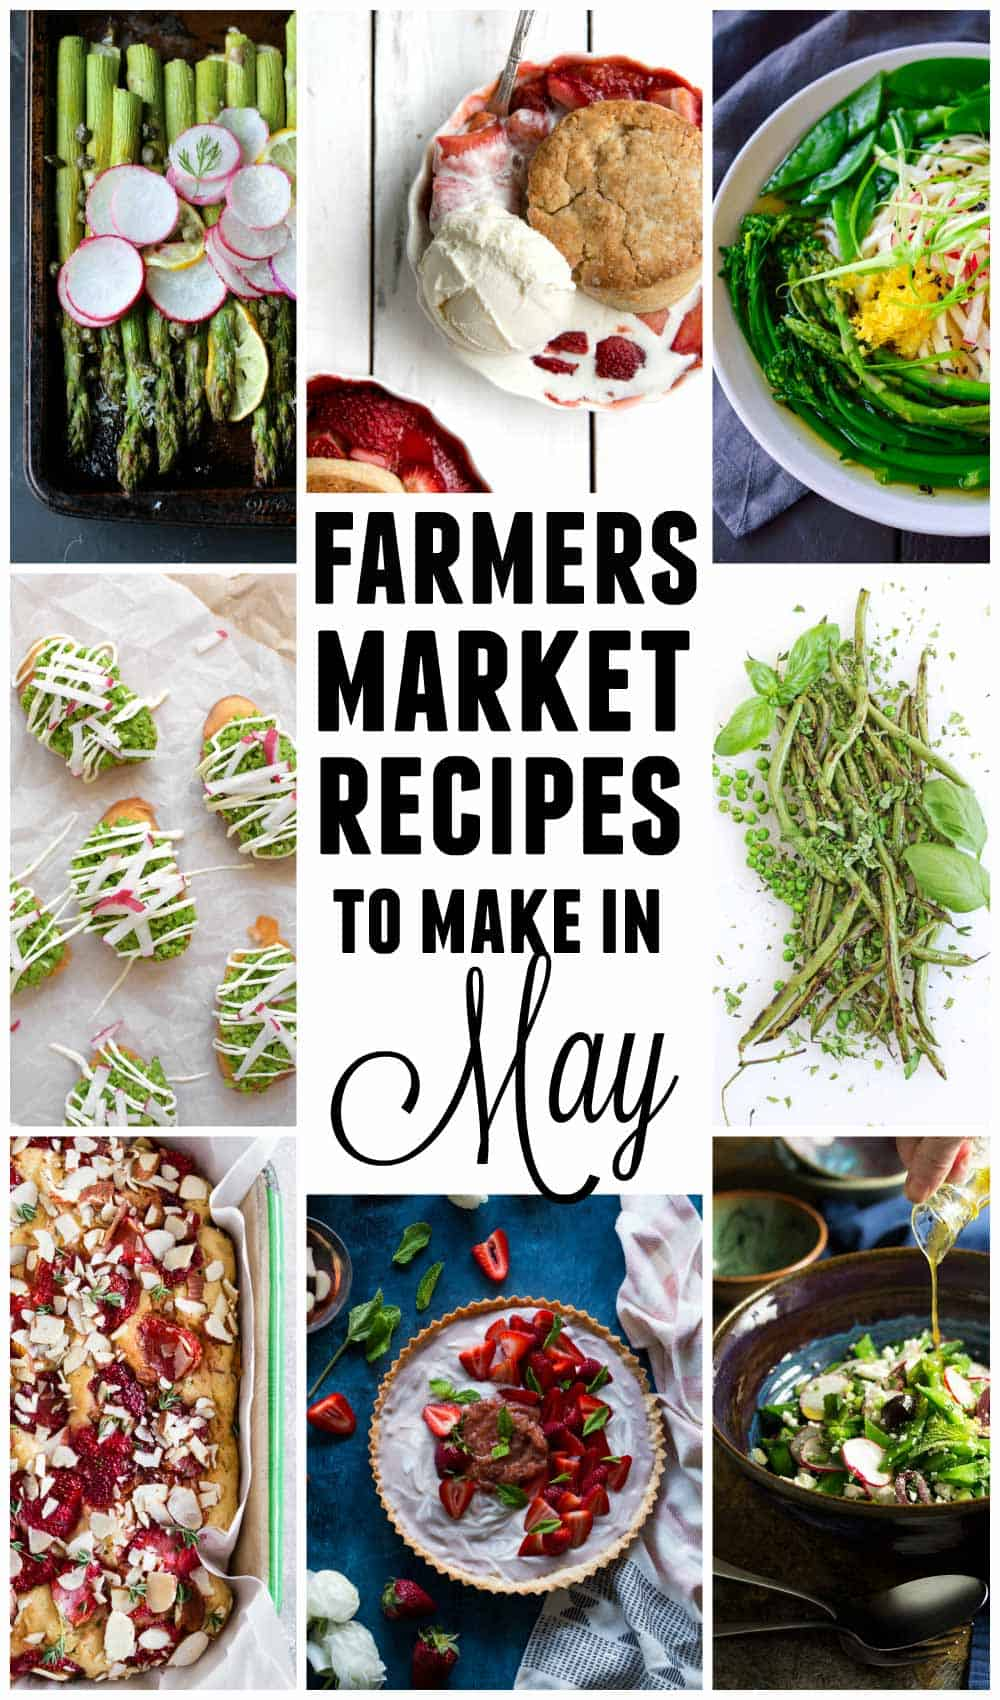 15 Farmers market recipes to make in May! Delicious, vegetarian, (mostly) healthy spring/summer recipes made with fresh, seasonal produce from your local farmers market or CSA bin. Eat local! // Rhubarbarians